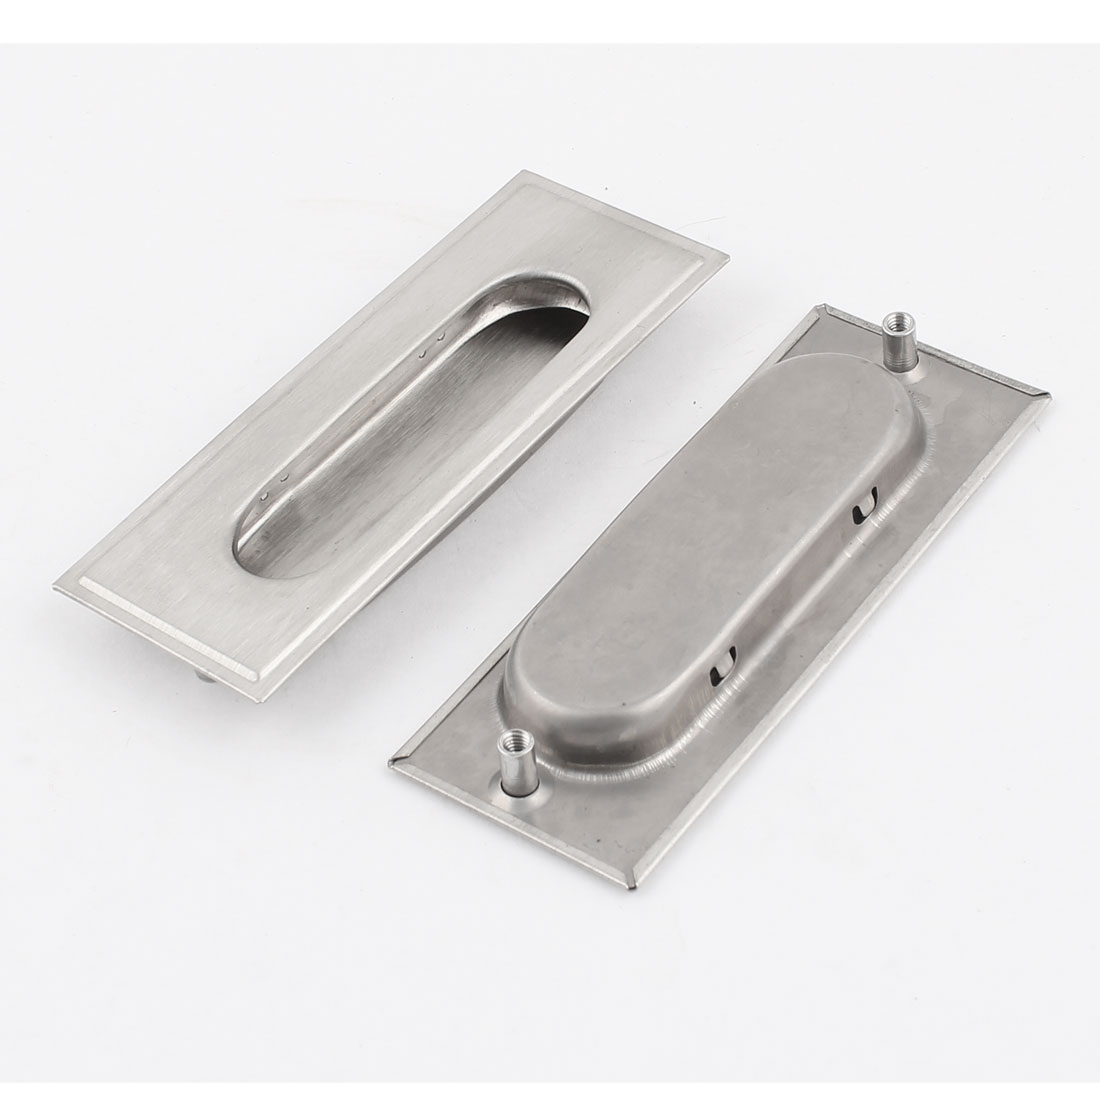 2 Pcs 11cm Long Silver Tone Metal Closet Drawer Cabinet Door Pull Handle